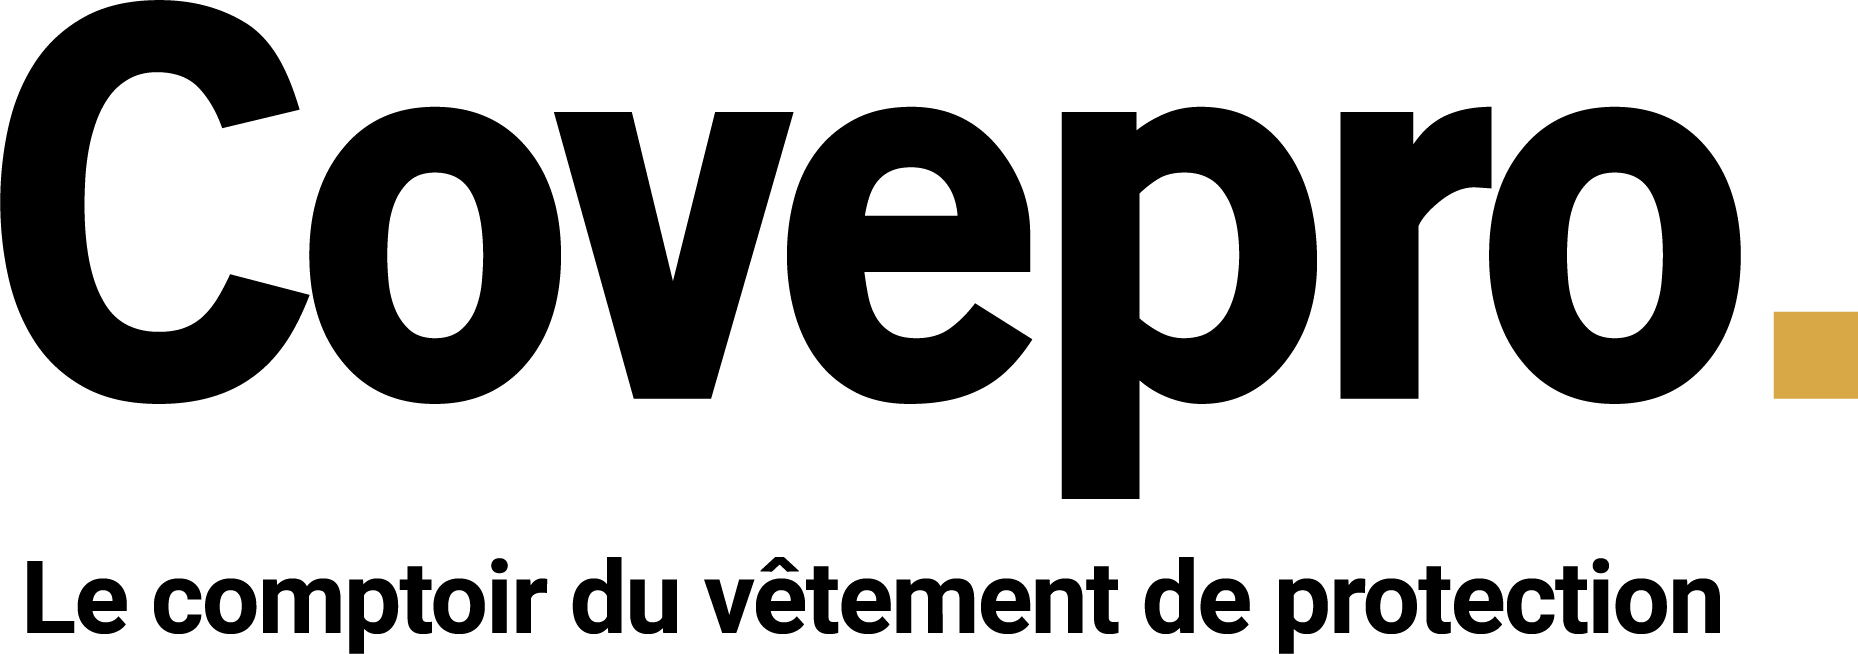 COVEPRO logo